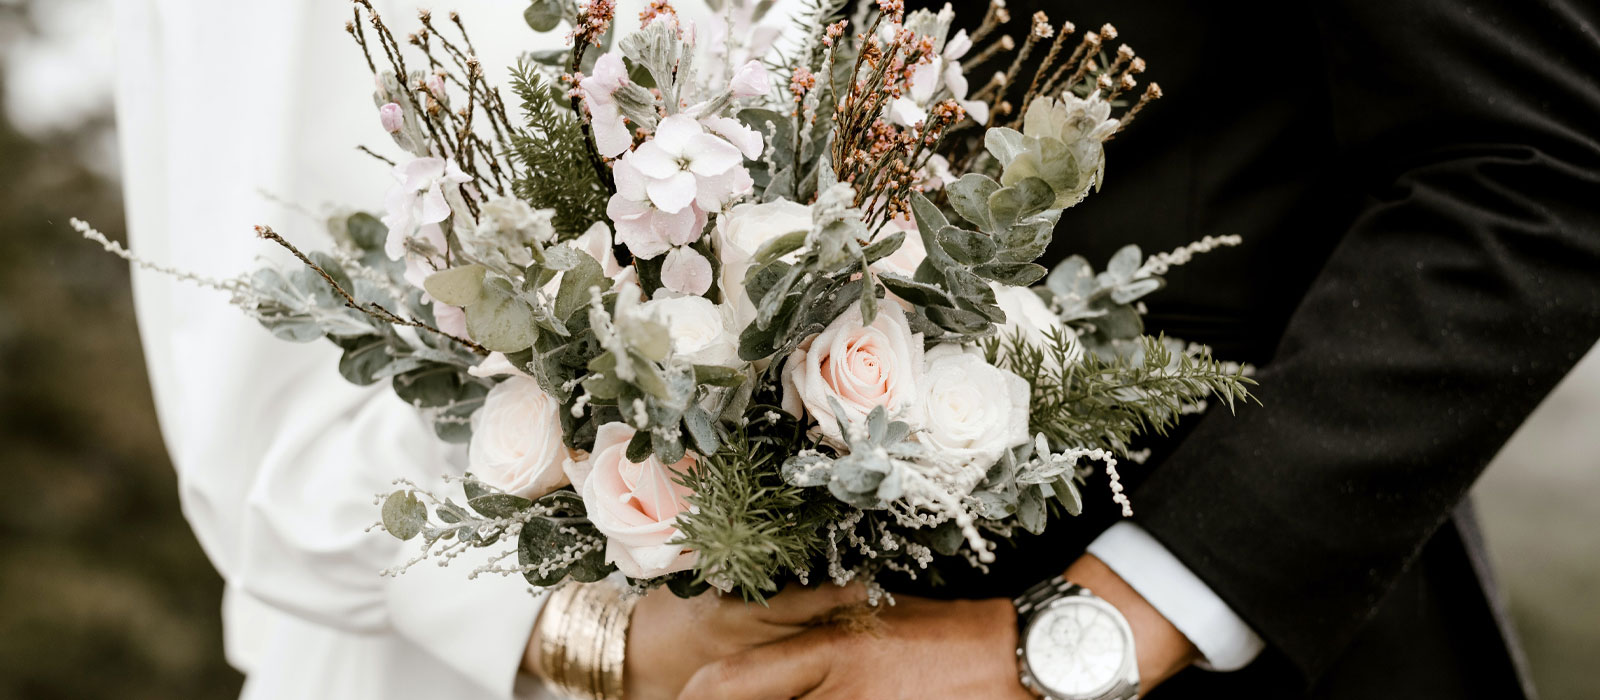 Three ways to manage your finances in the lead-up to your wedding